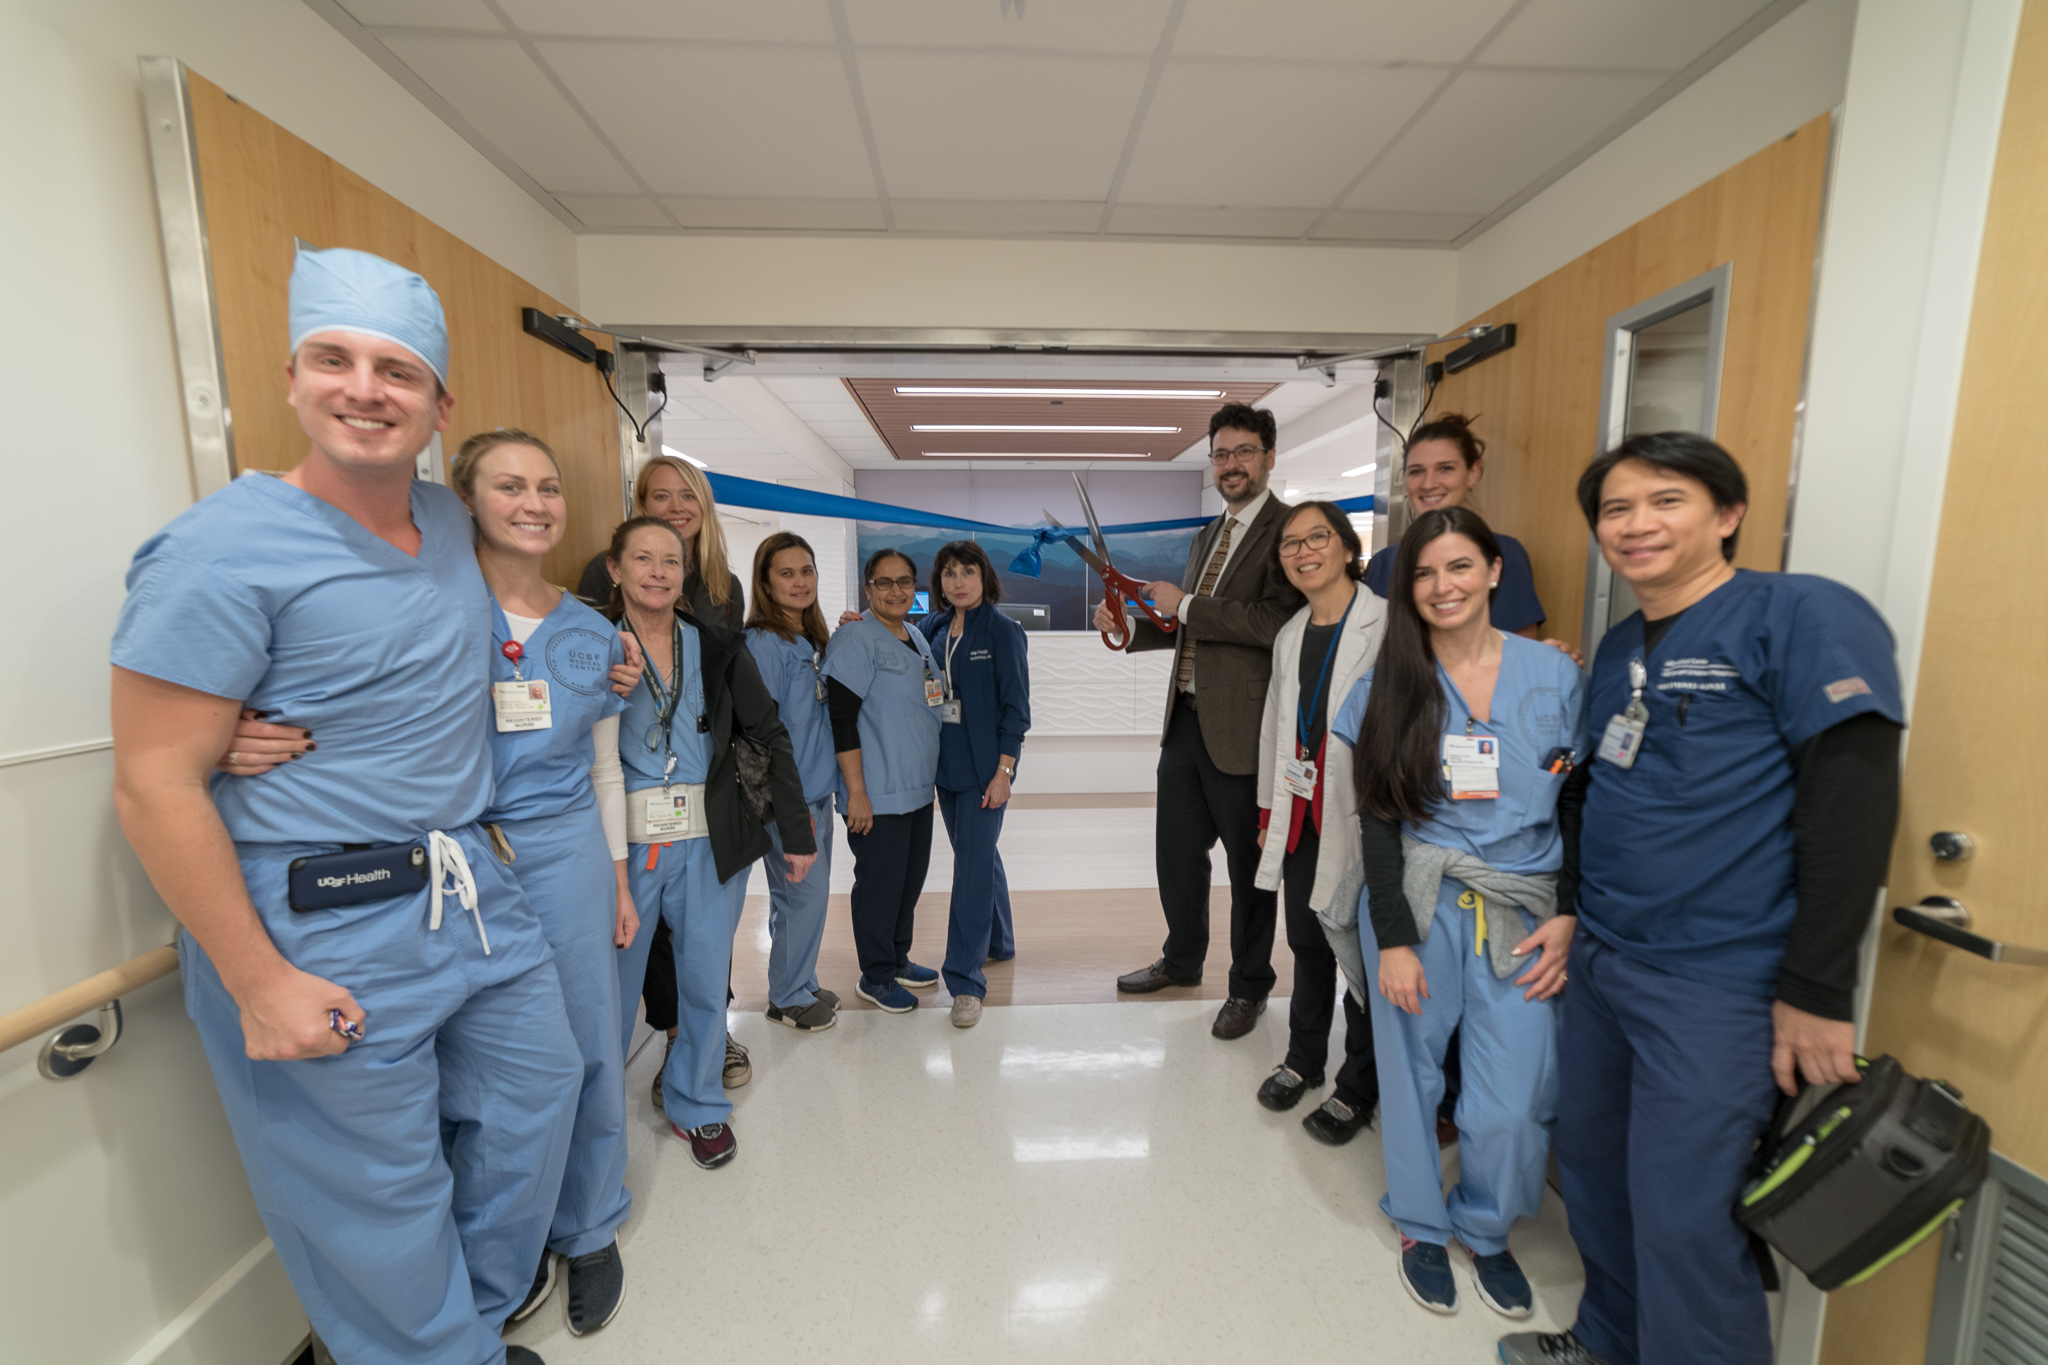 UCSF Radiology Completes Important Facility Expansion | UCSF